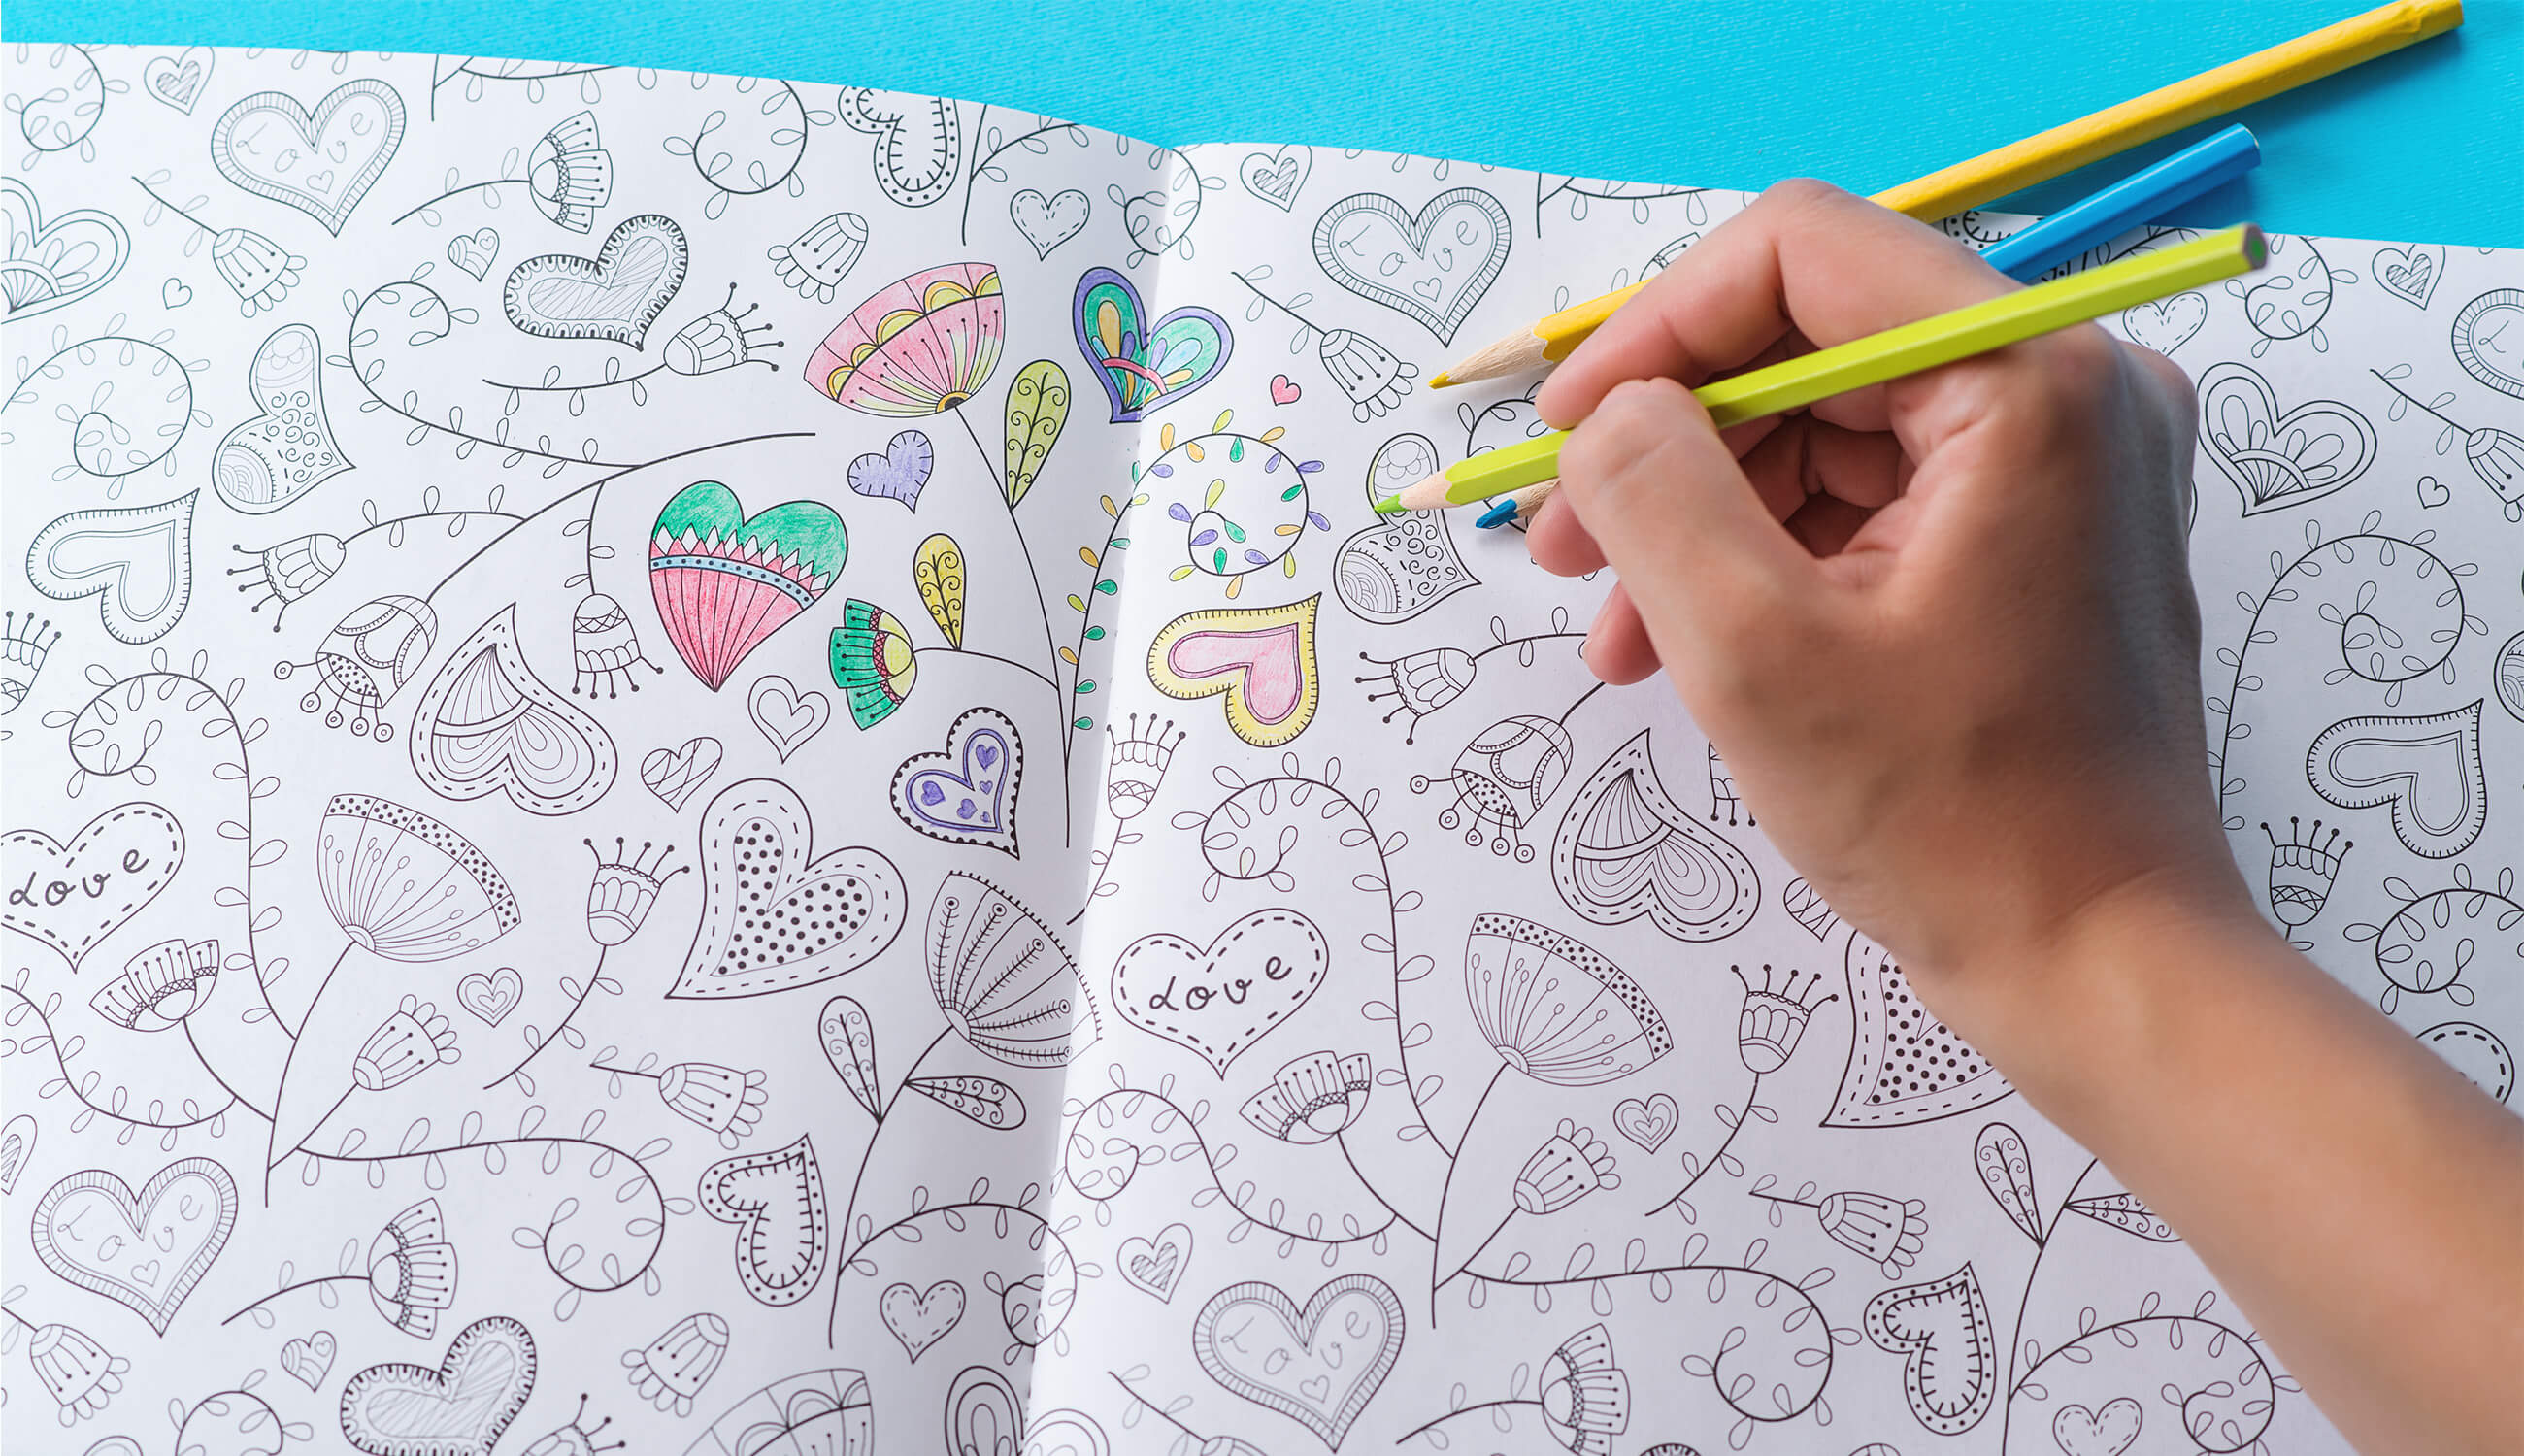 hands coloring in coloring books